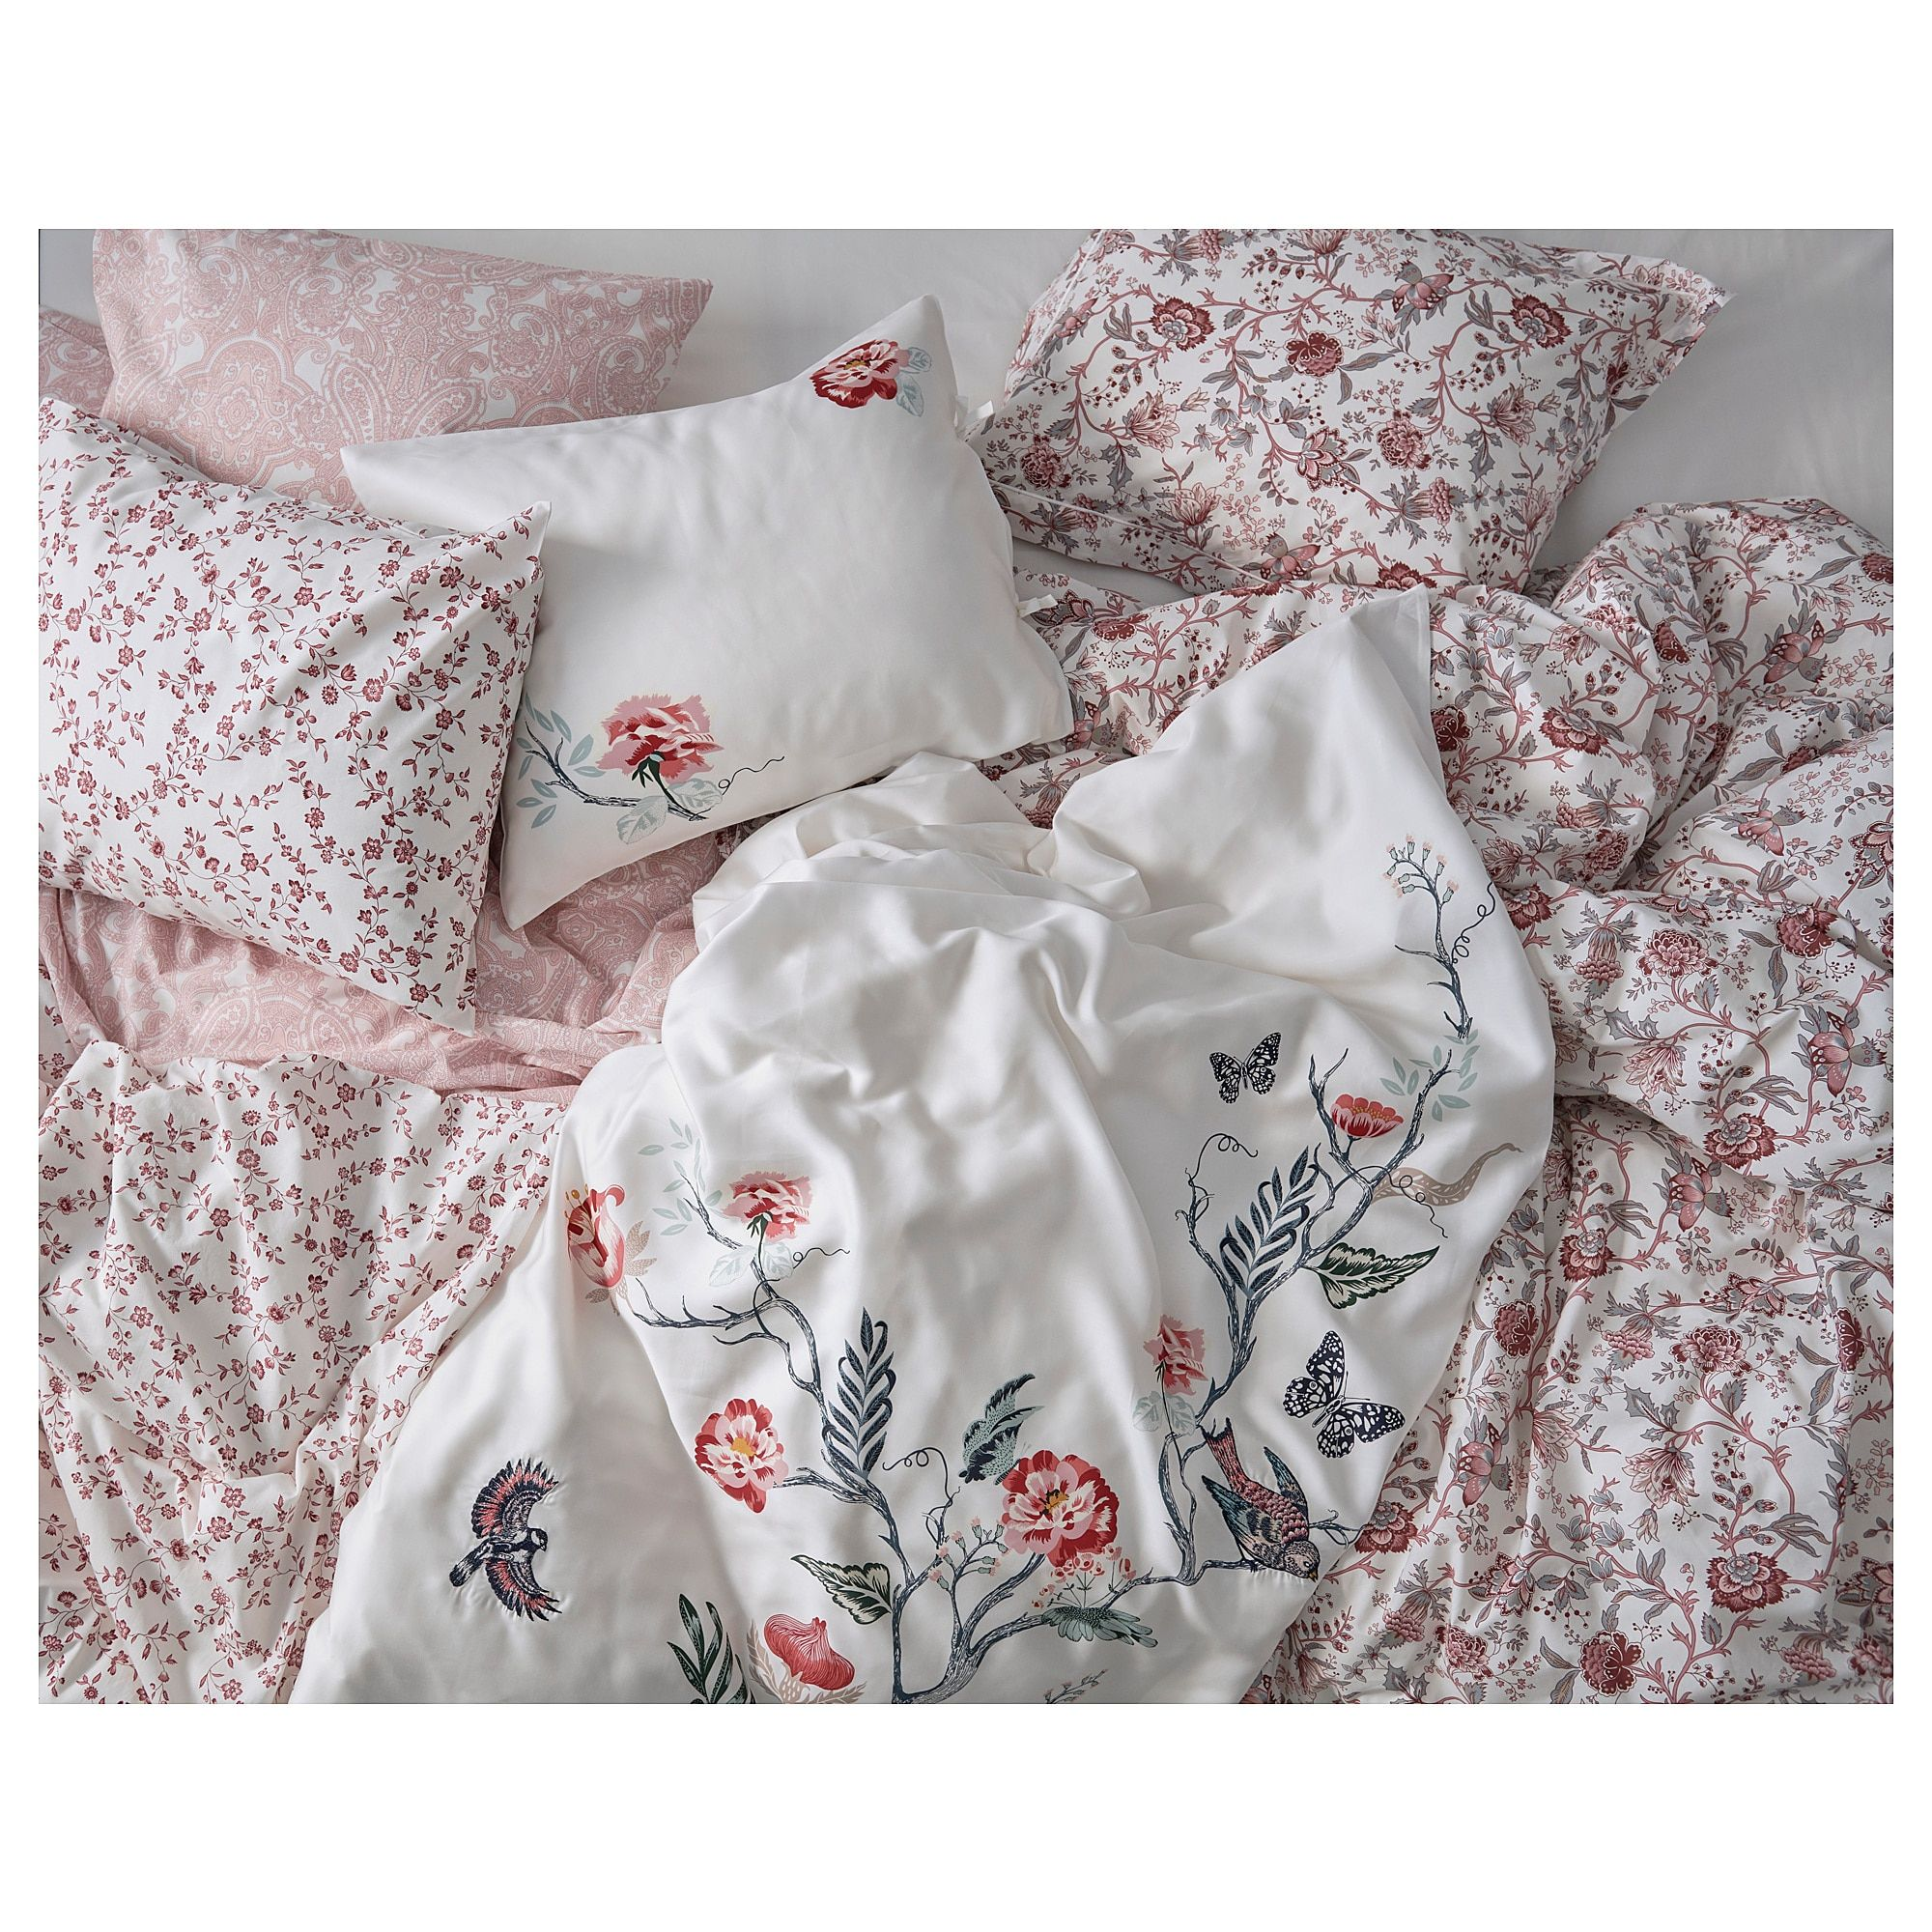 Queen Pillow Cases (2) County Road Size